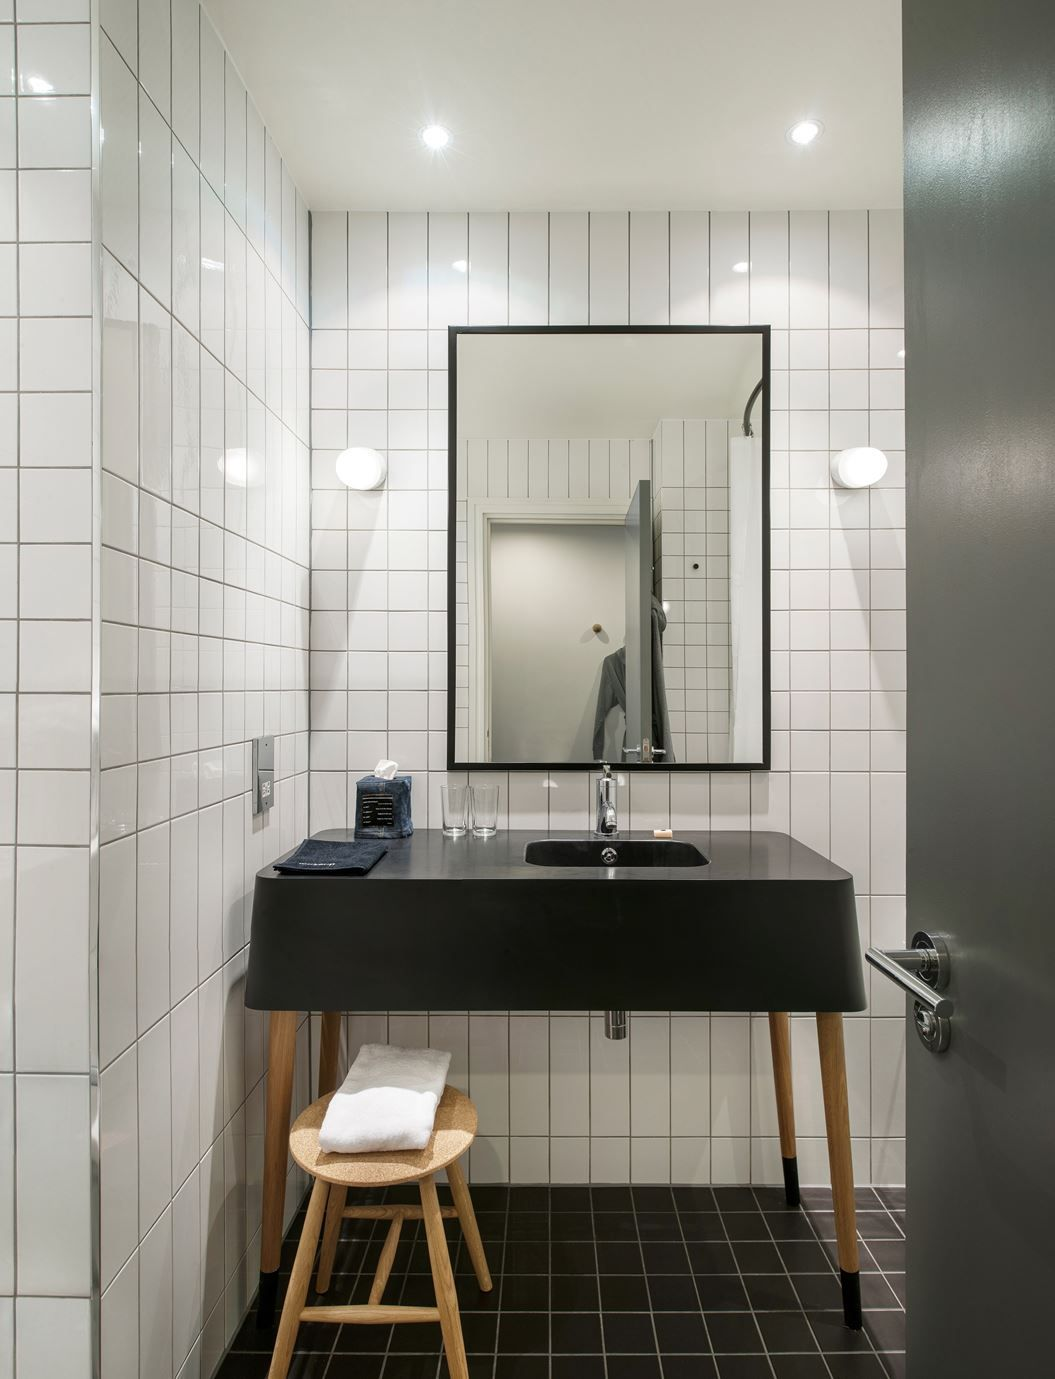 Shoreditch Design Rooms: Ace Hotel London Shoreditch